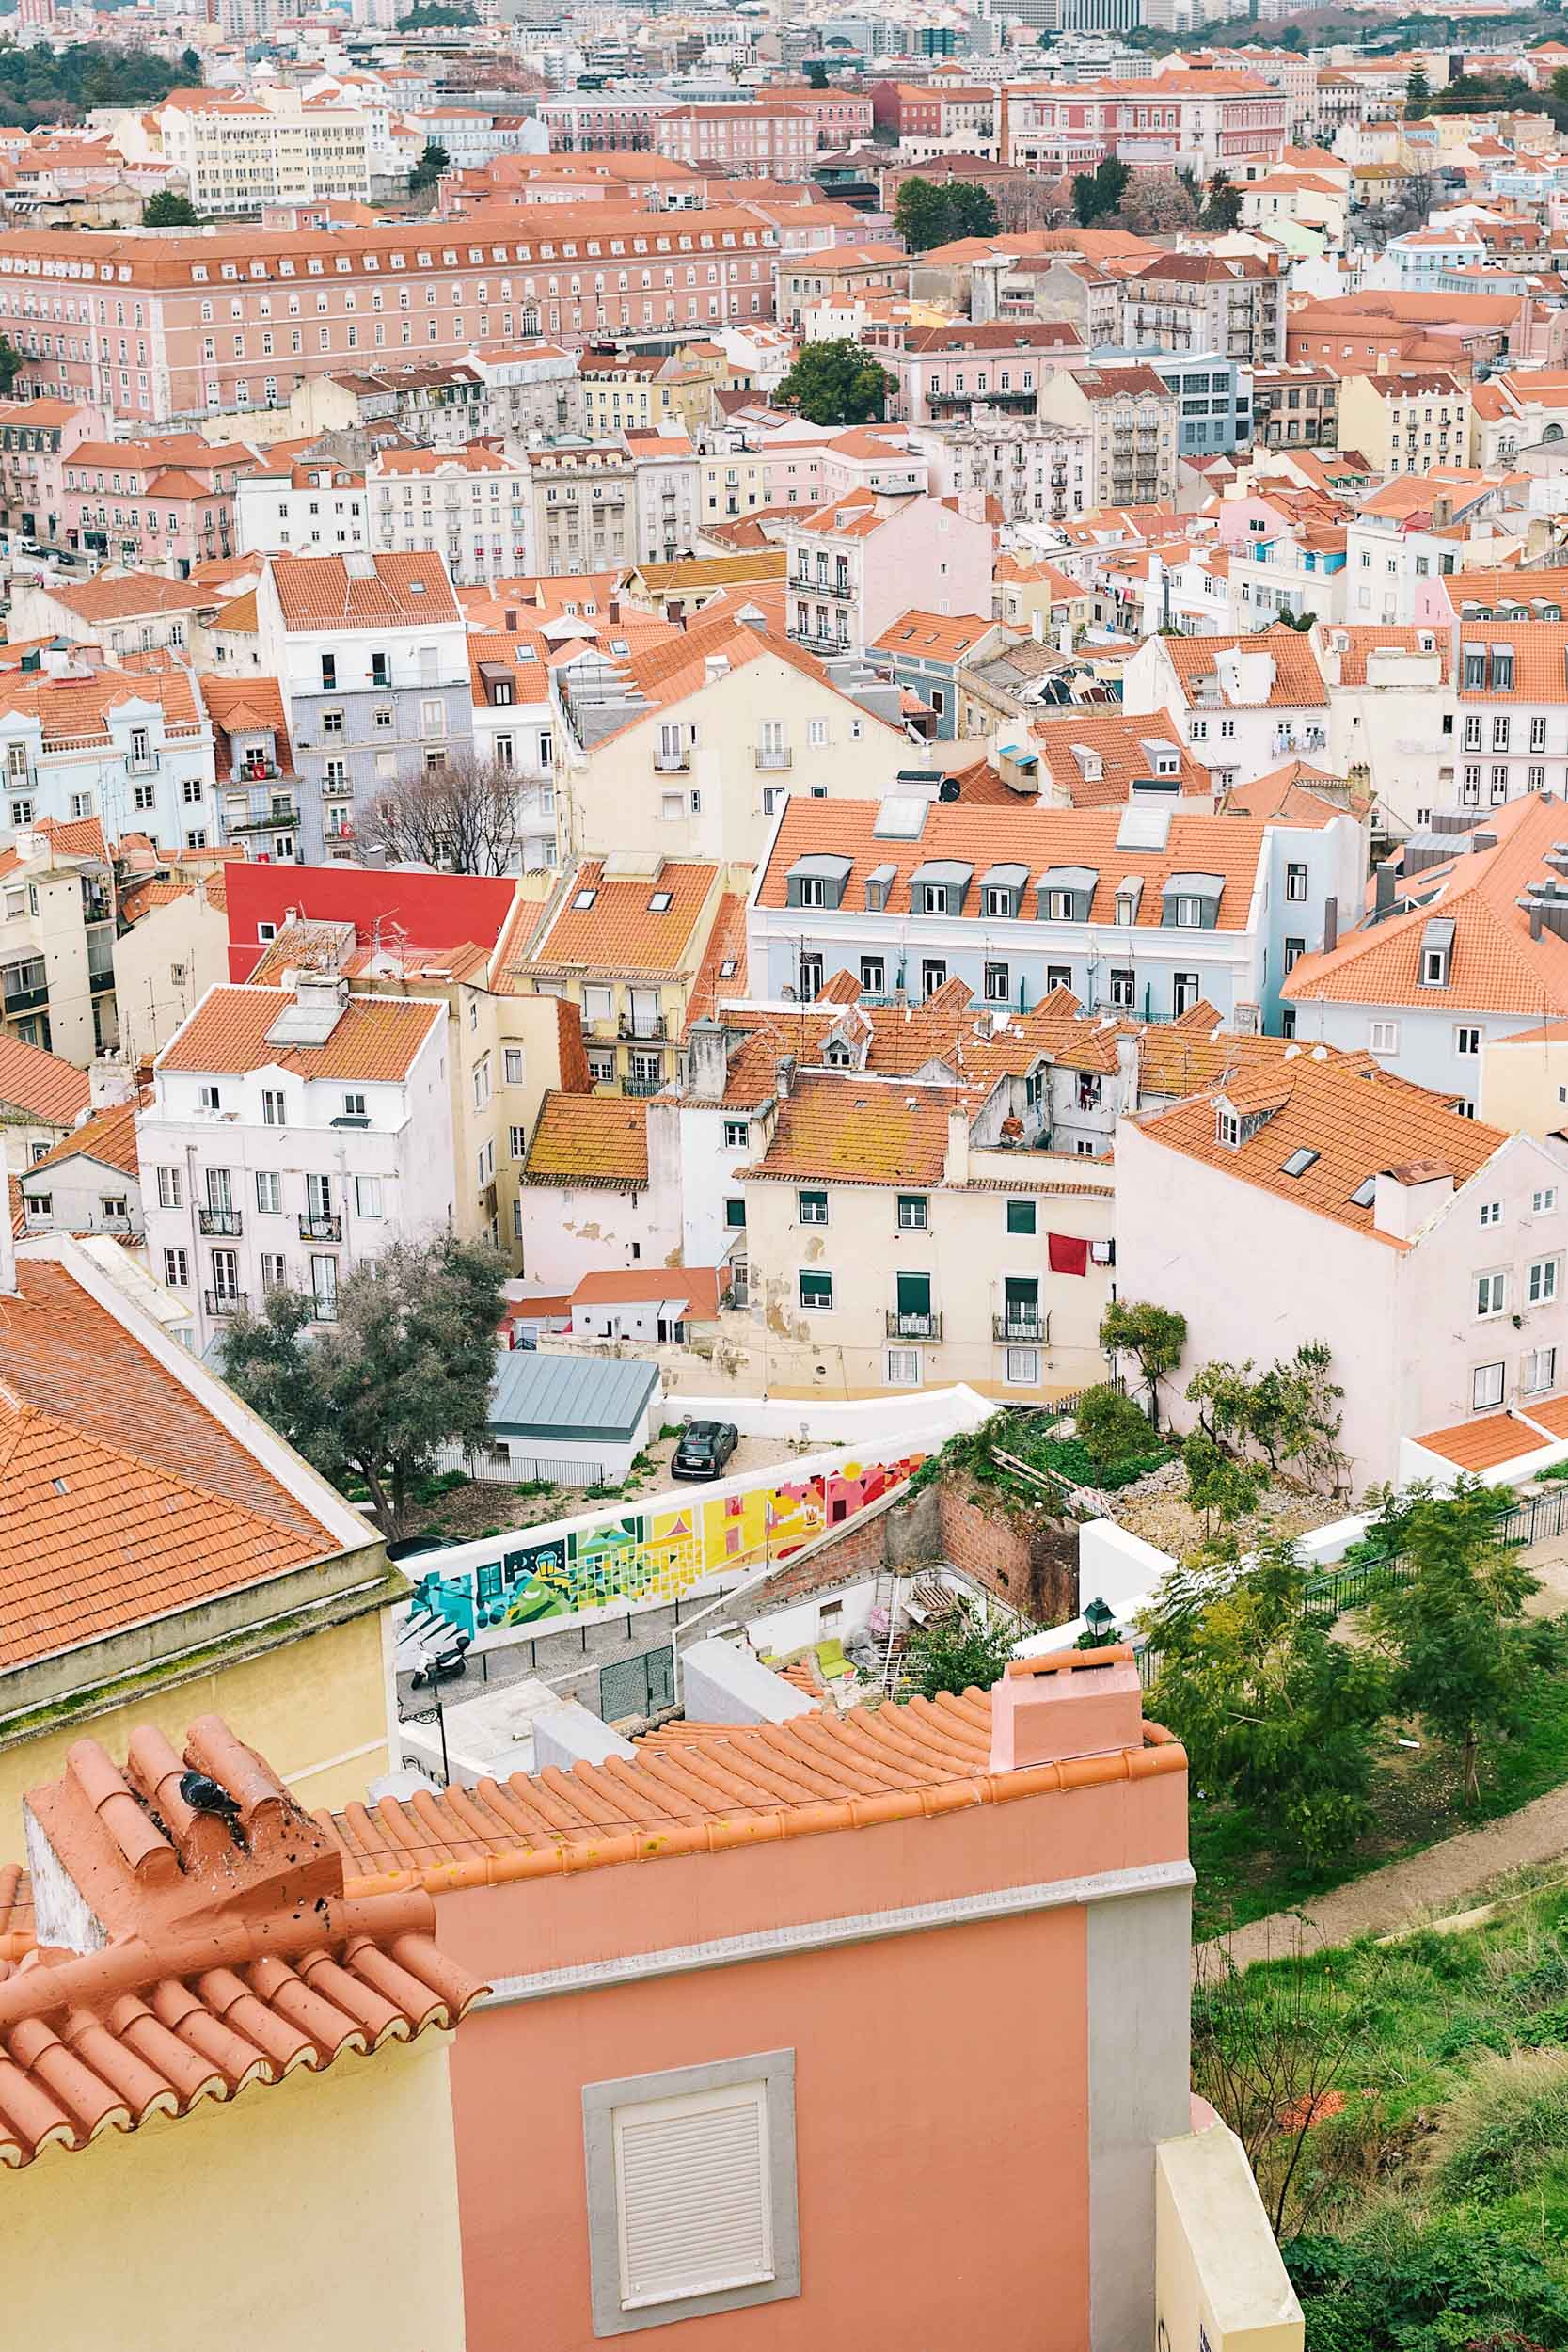 See the sights in Lisbon via a tour on your first day